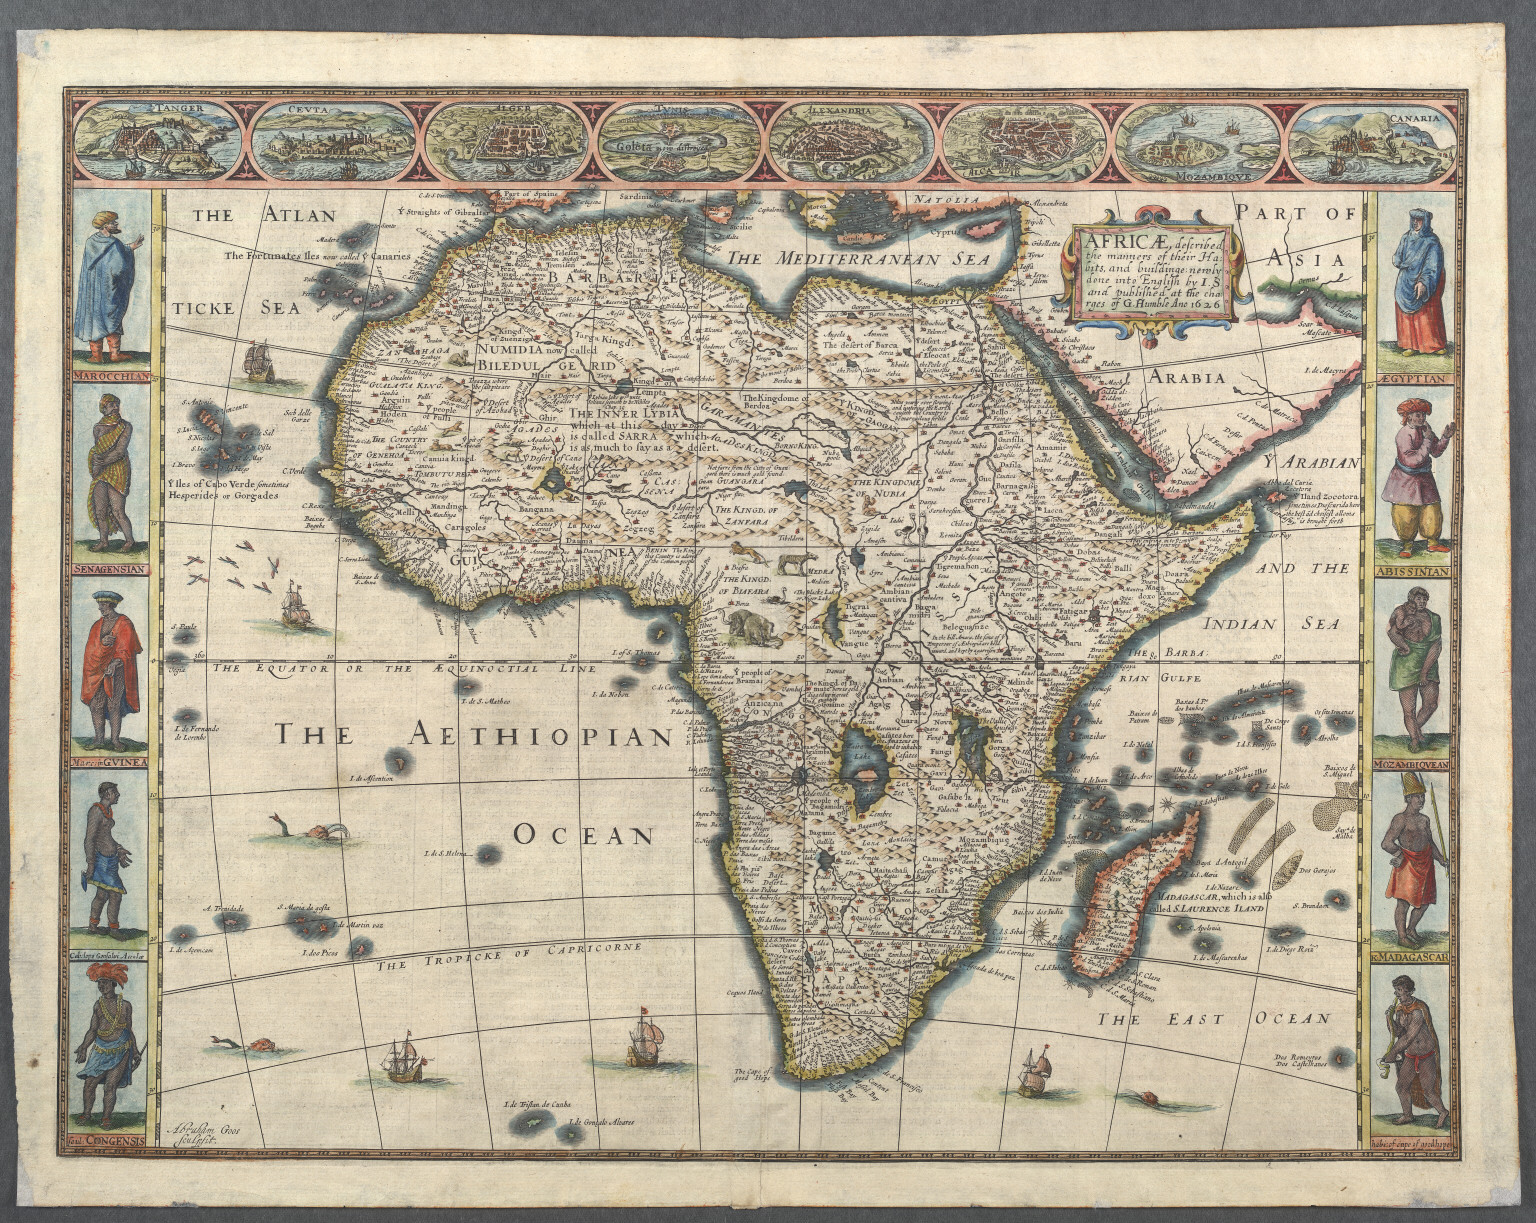 Africae, described, the manners of their Habits, and buildinge: ...